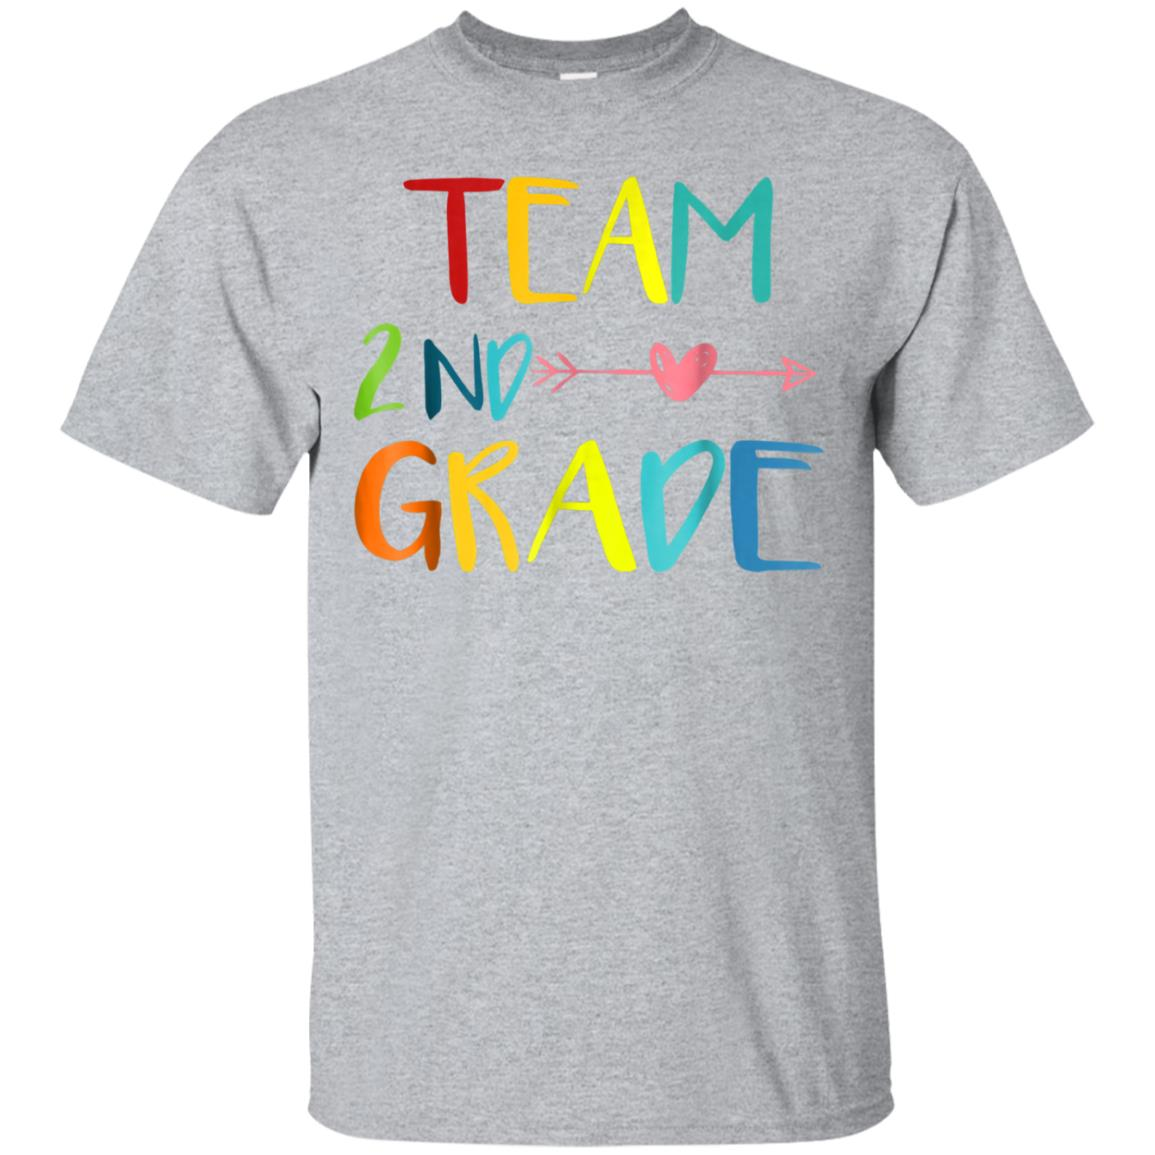 Team 2nd Second Grade Teacher T-Shirt 1st Day of School 99promocode